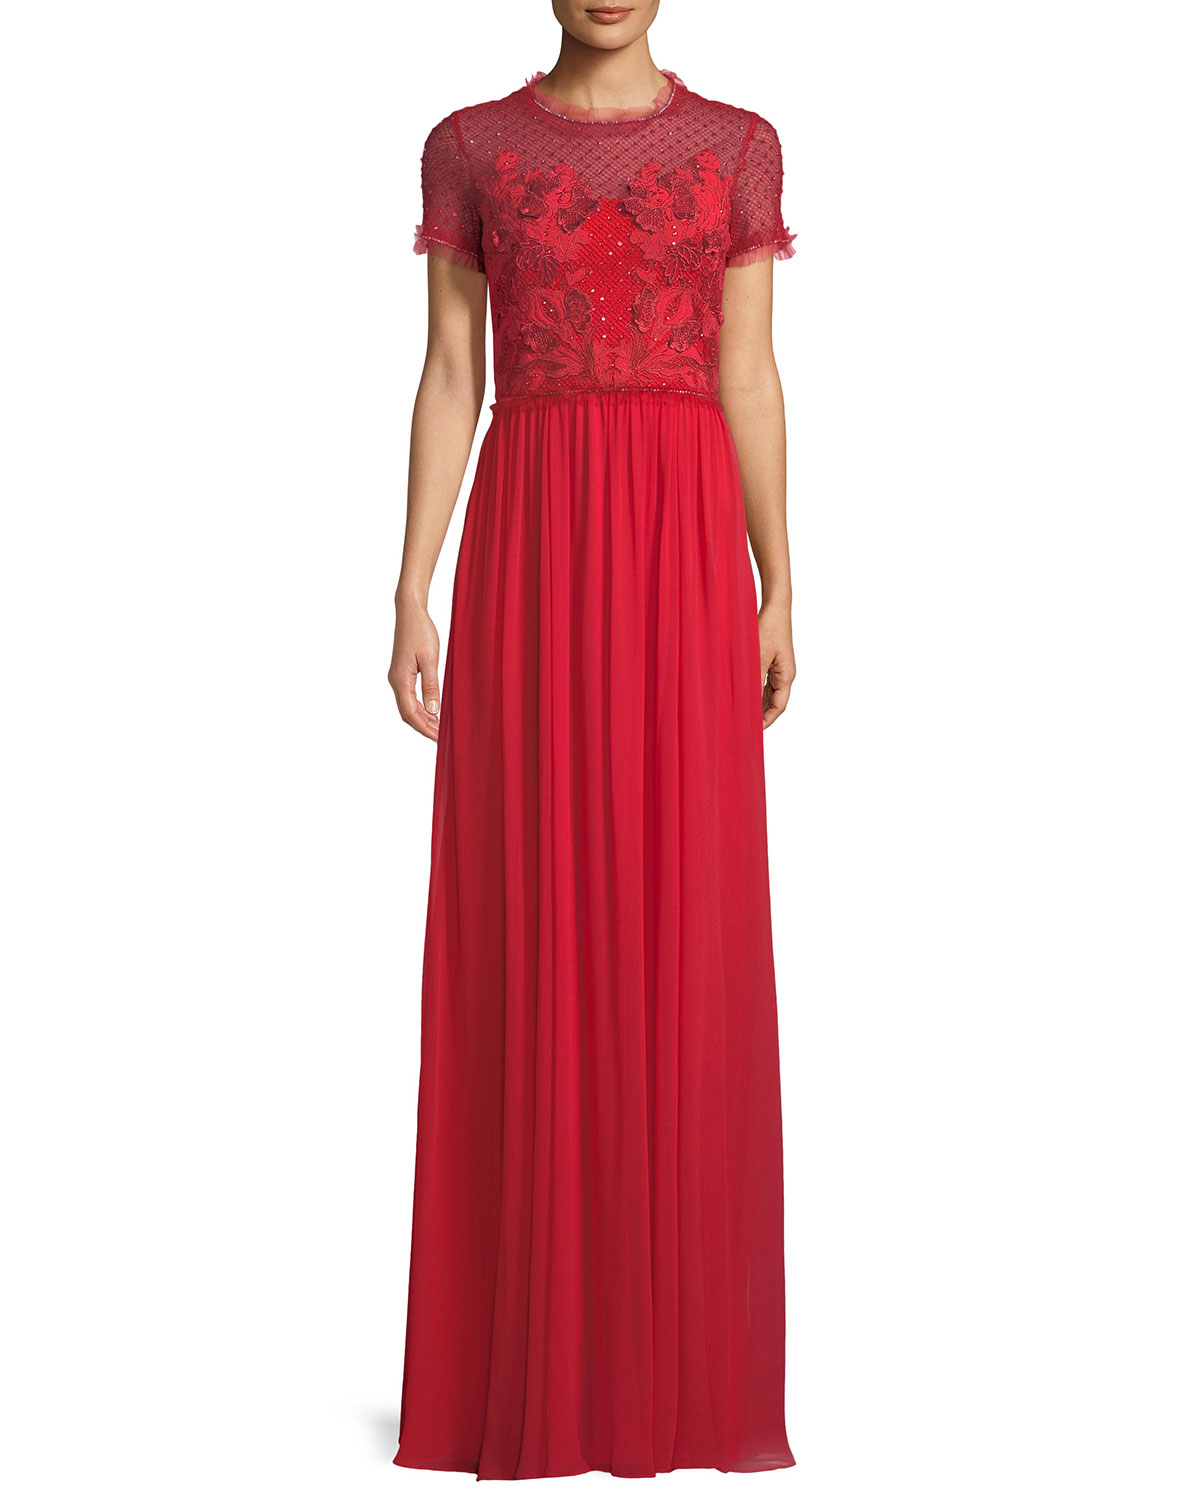 ae54e30a210a33 Jenny Packham Short-Sleeve Round-Neck Lace & Sequin Top Evening Gown ...